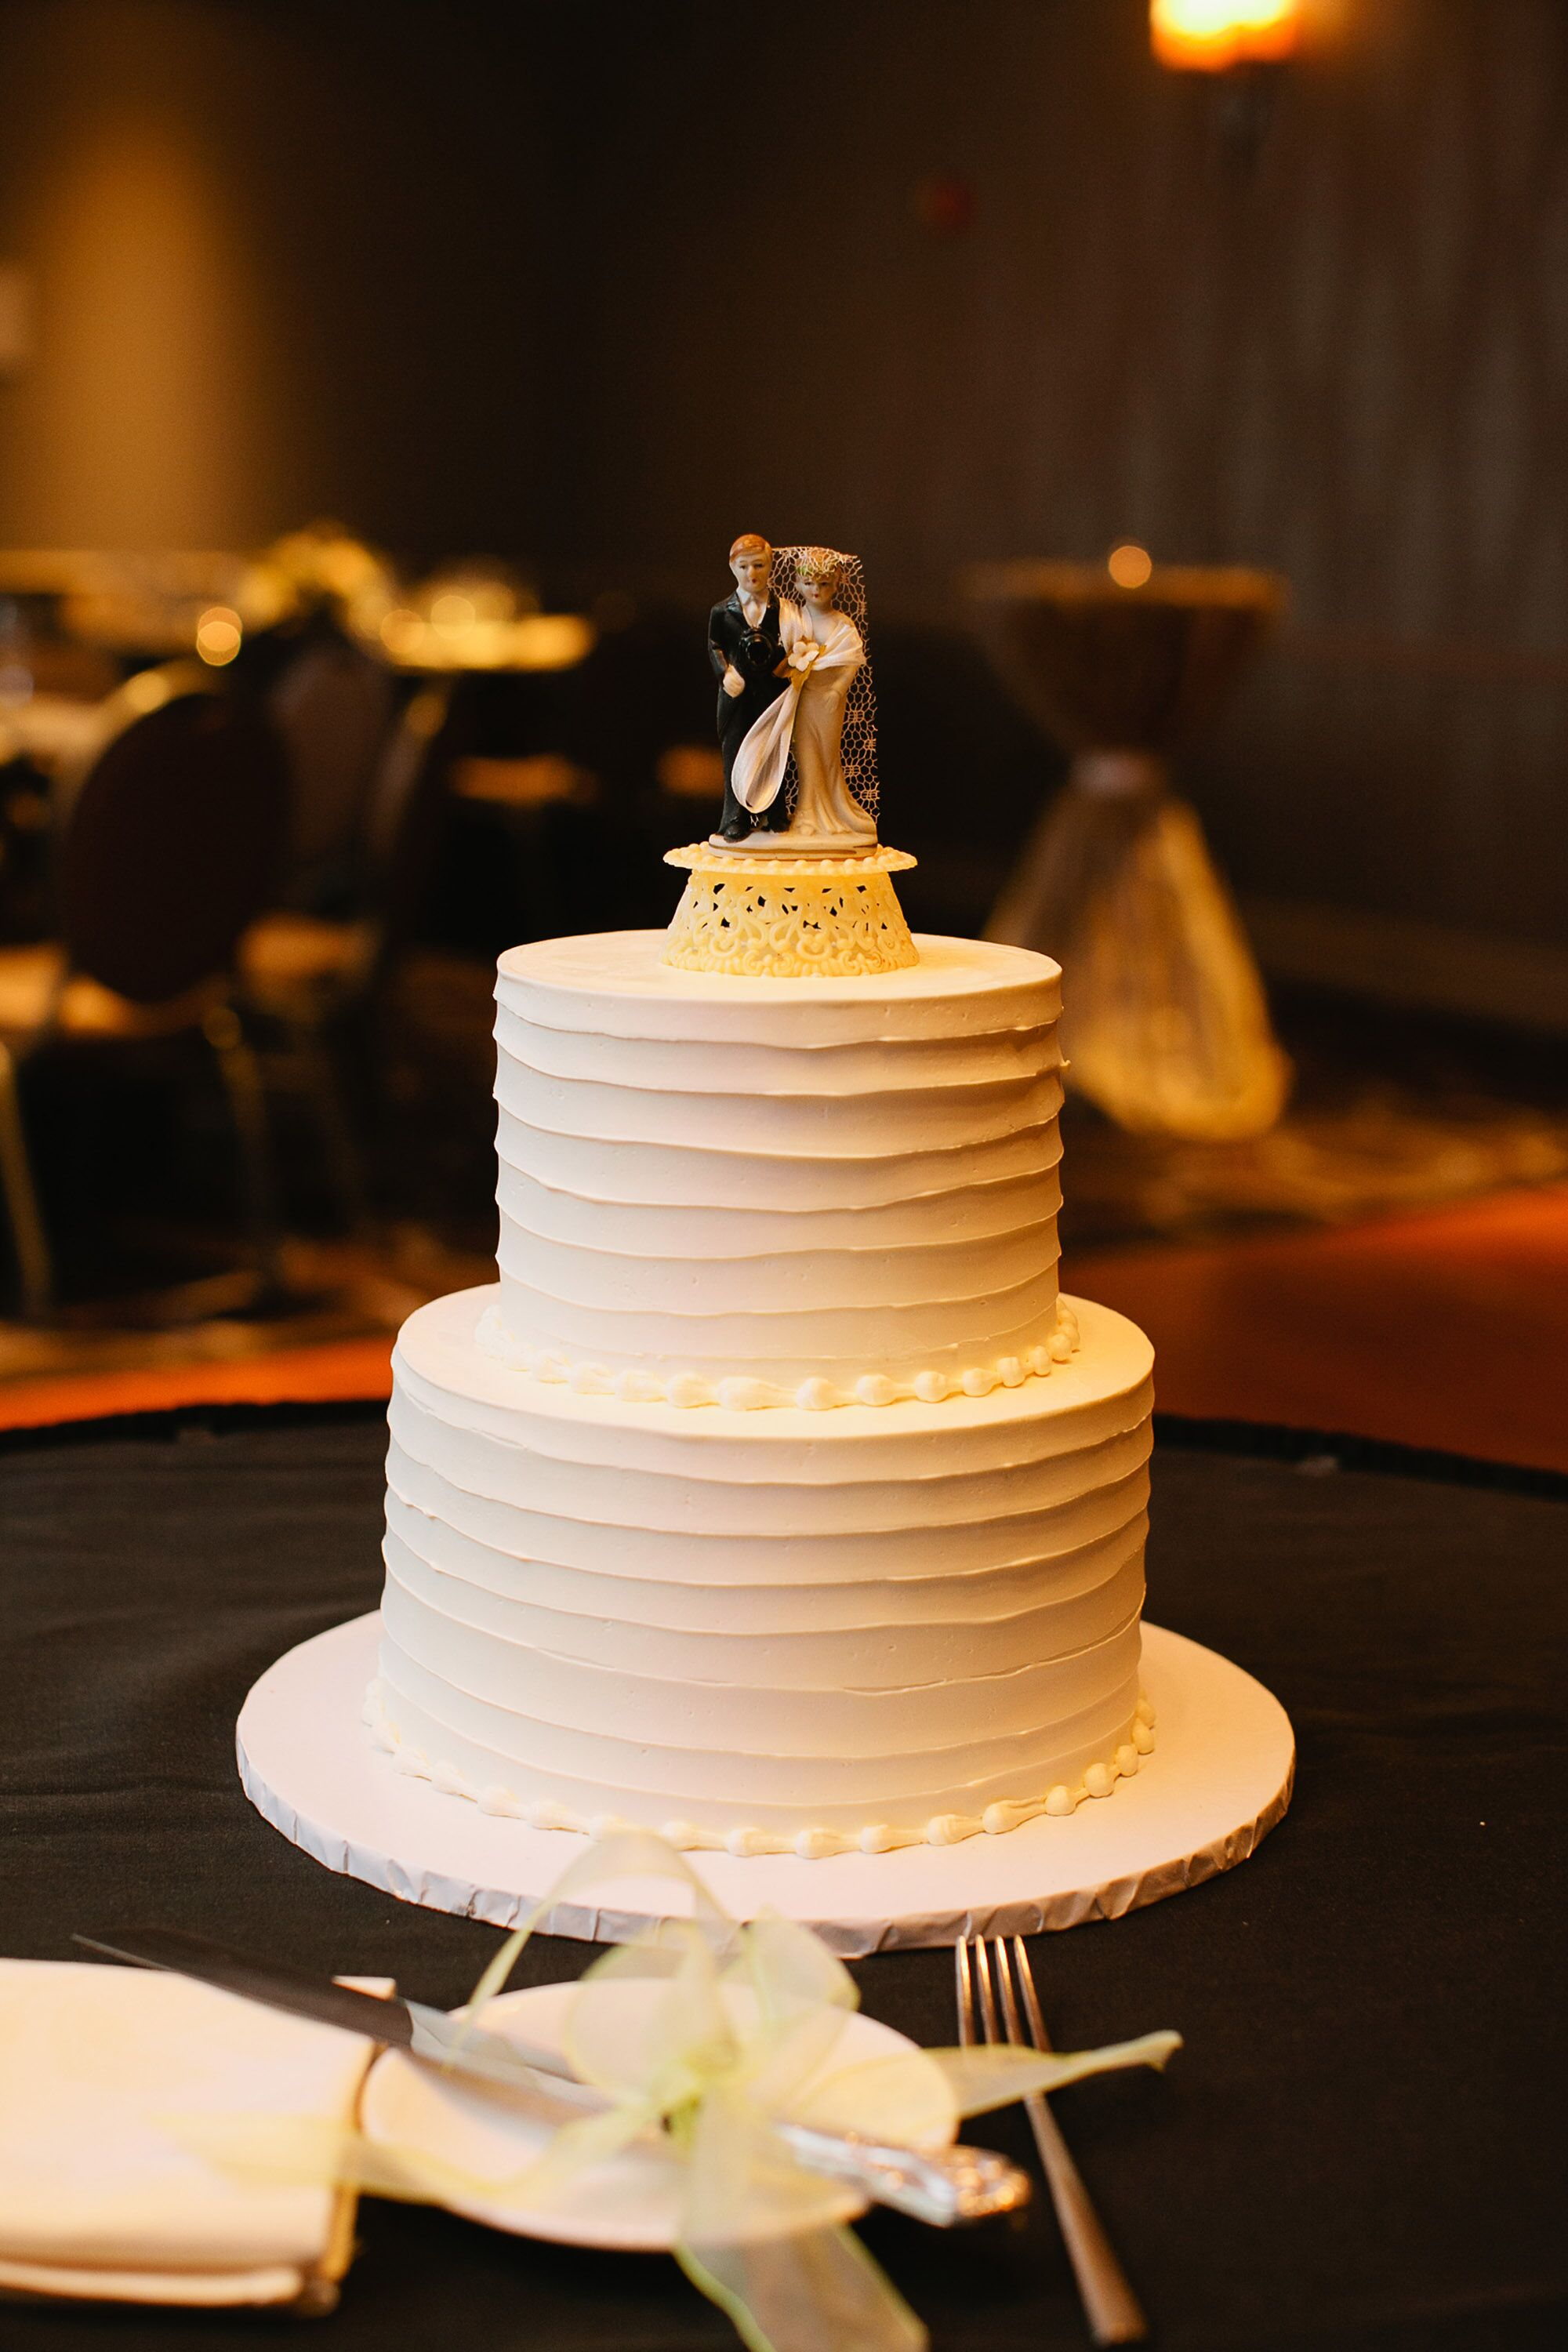 Two Tier Wedding Cake With Buttercream and Cake Topper